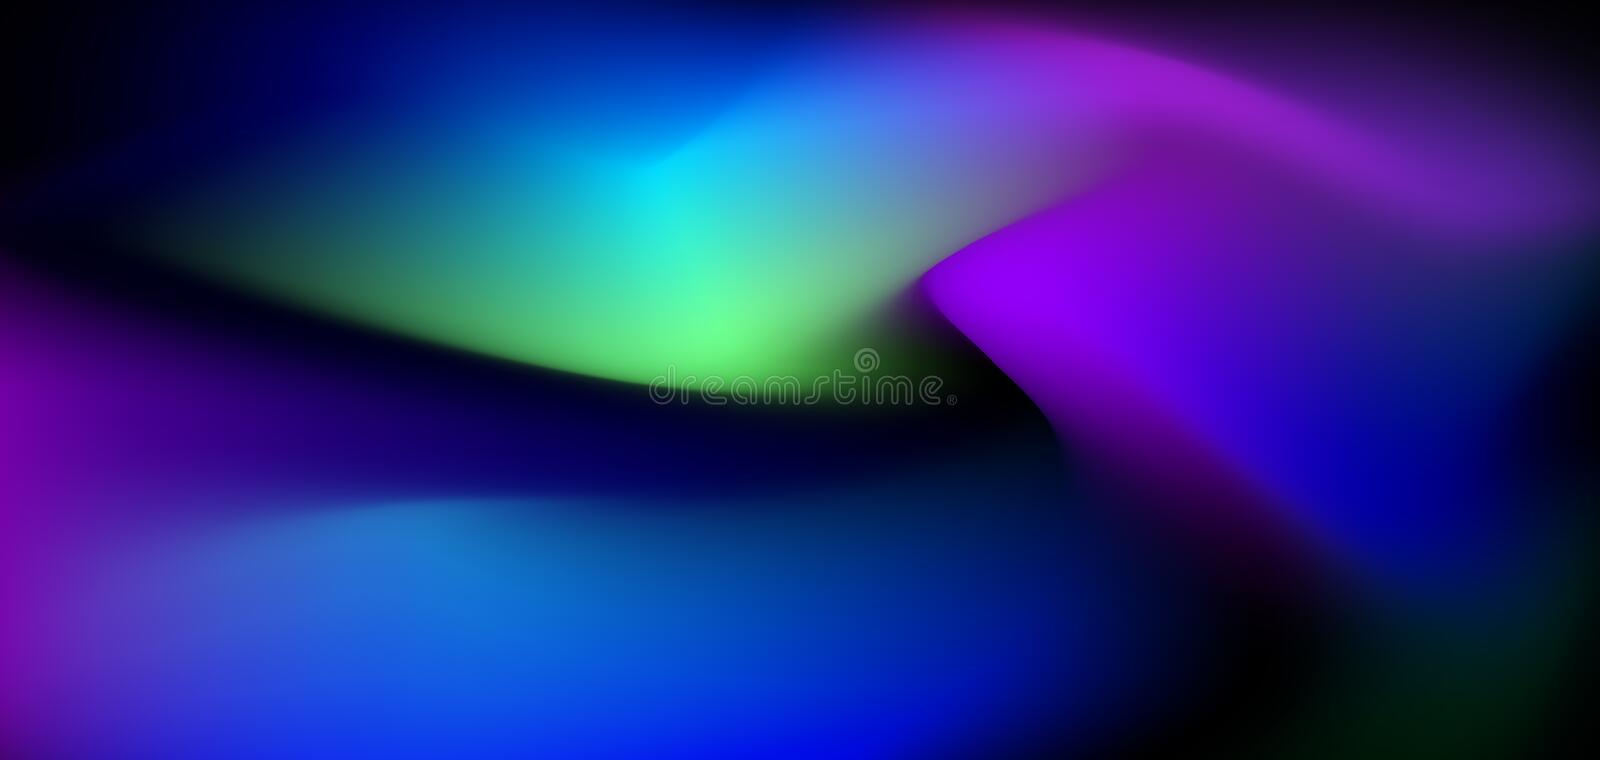 Illustration abstract glowing, neon light, minimal bright fluid, liquid gradient background. Vector modern trendy, graphic design stock illustration